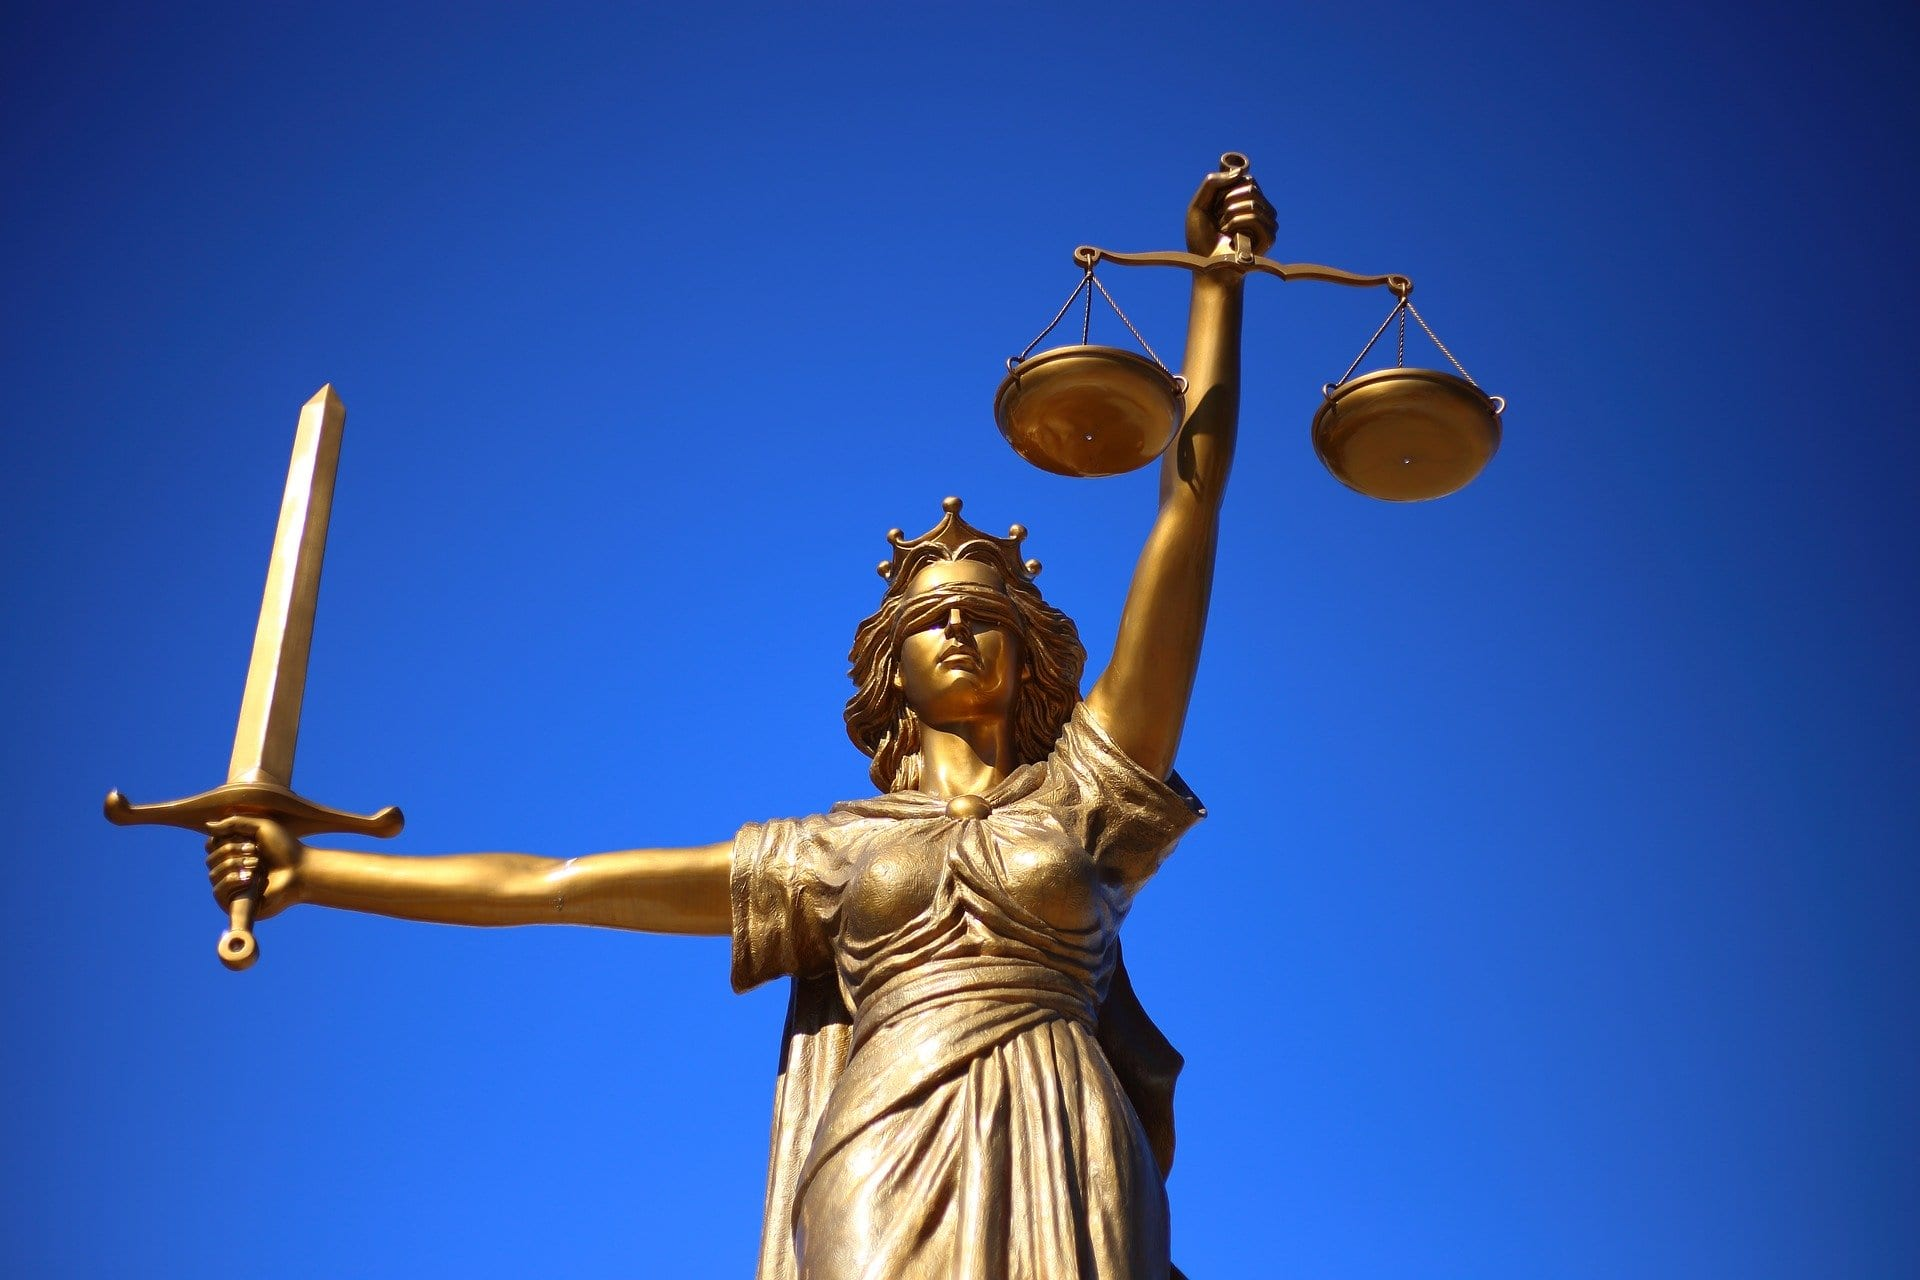 Statue of Lady Justice; image by William Cho, via Pixabay.com.